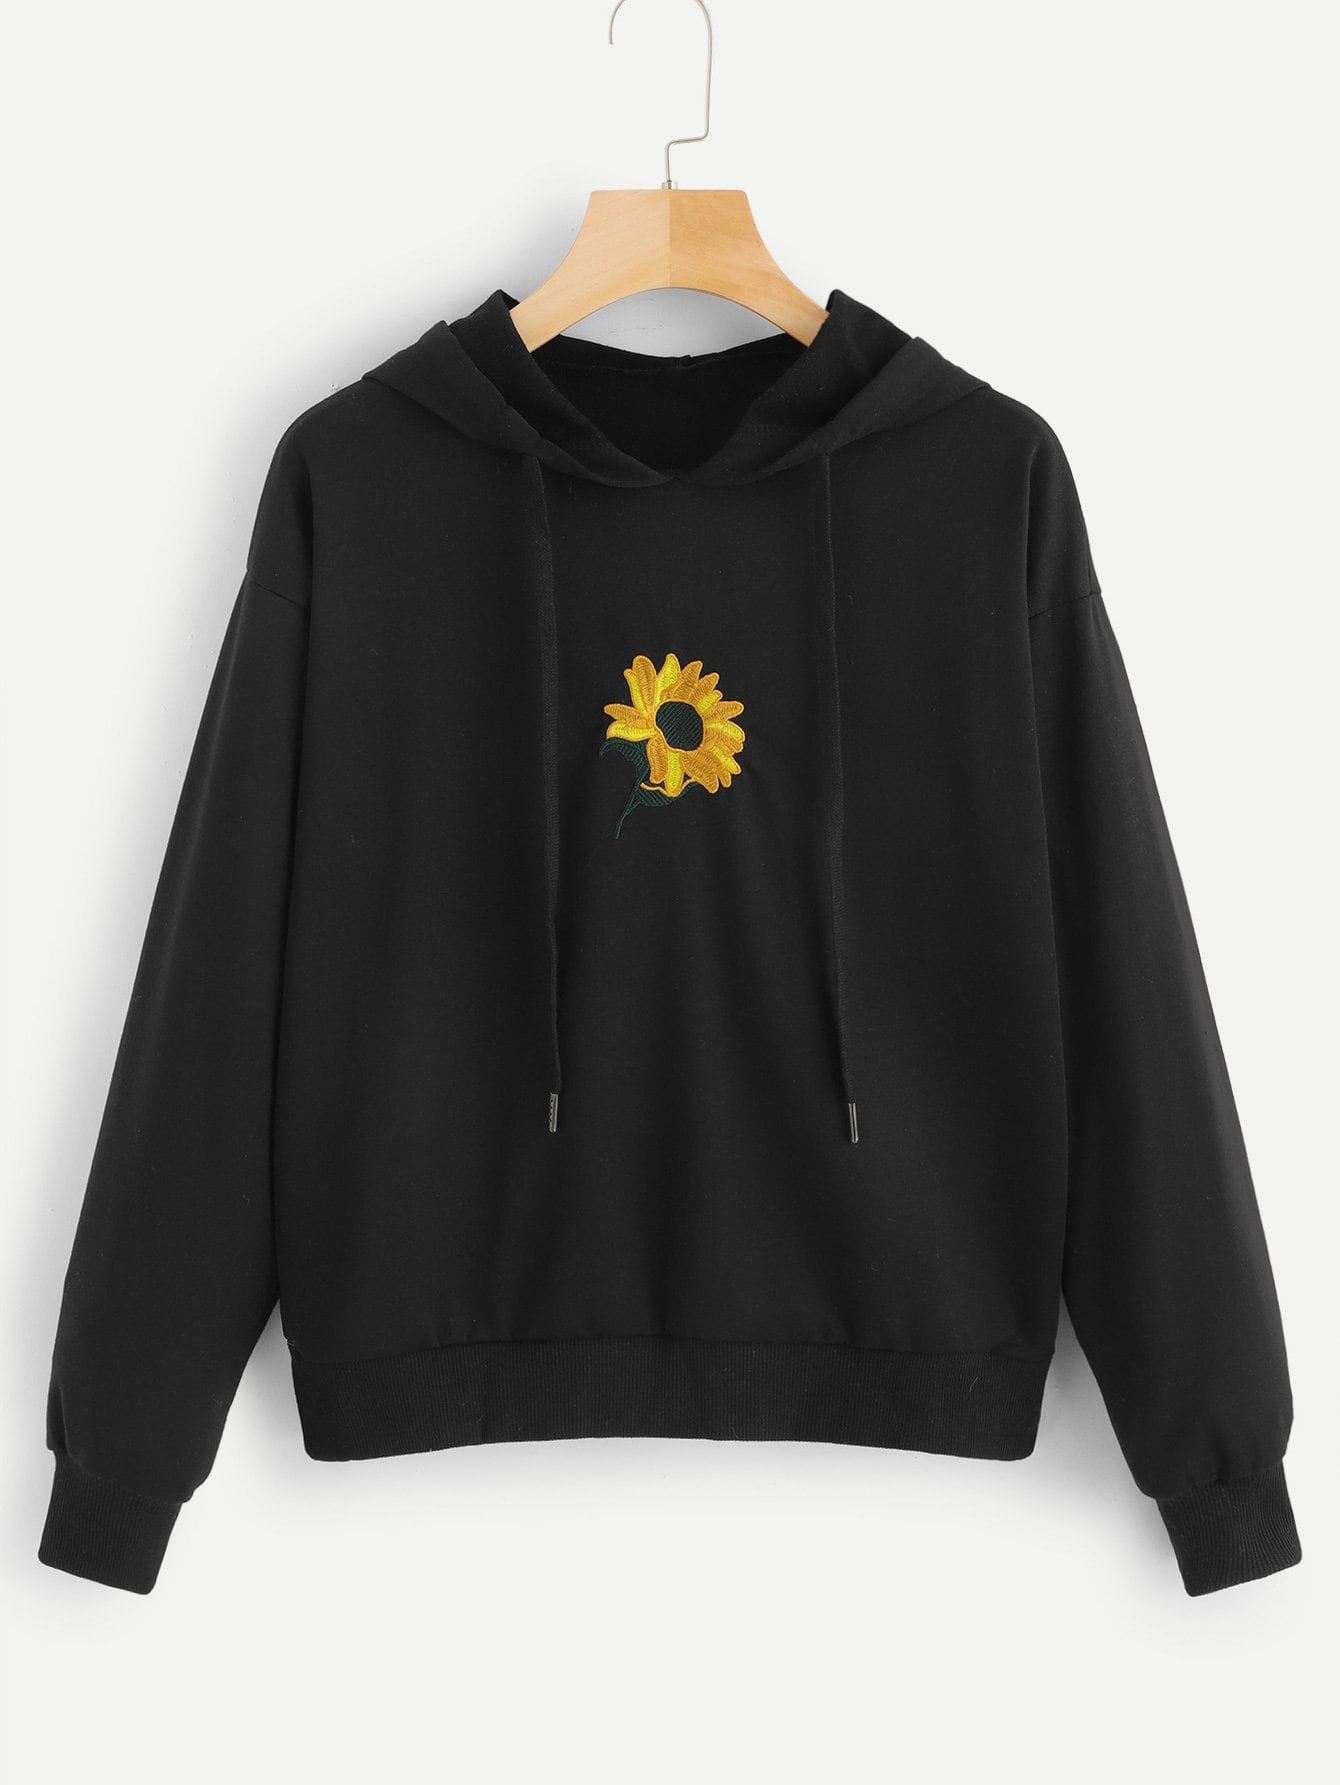 Floral Embroidery Hooded Sweatshirt by Romwe